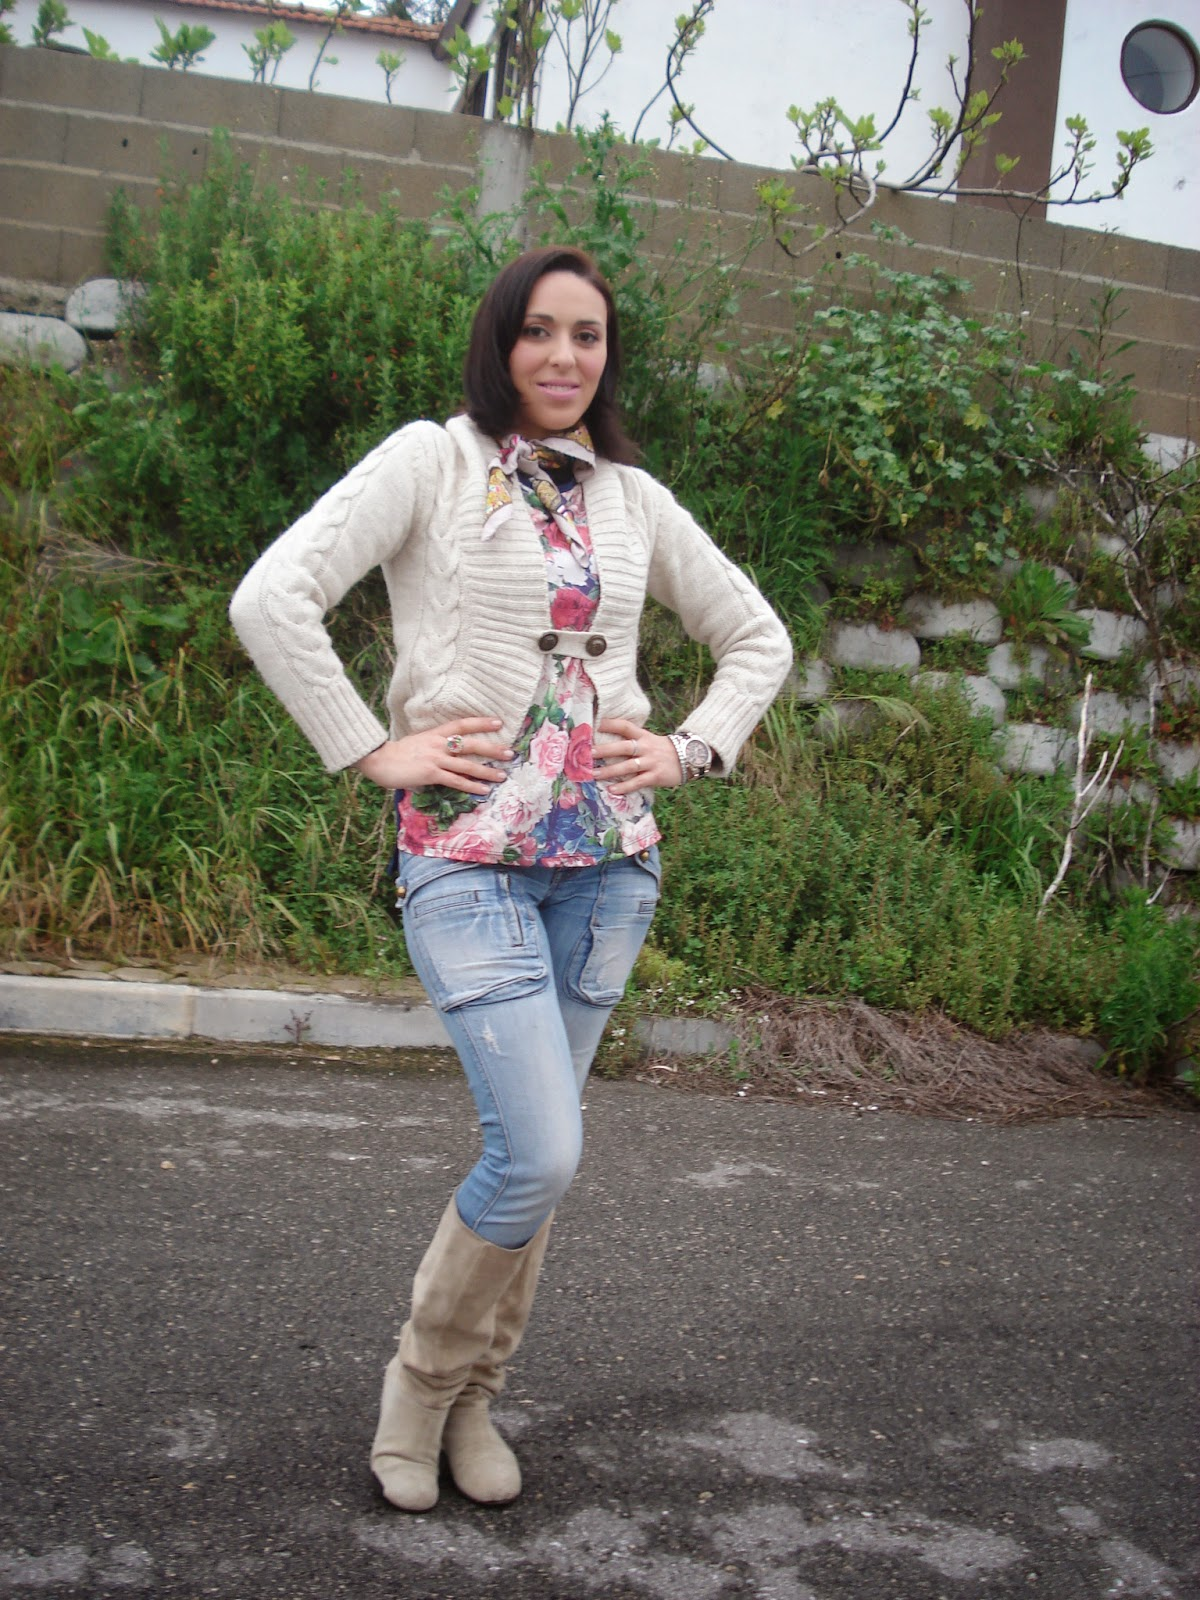 moda, sapatinho, 2014, 10, top, colmeia, aveiro, google, portugal, blog, blogue, blogger, summer, verão, fashion, look